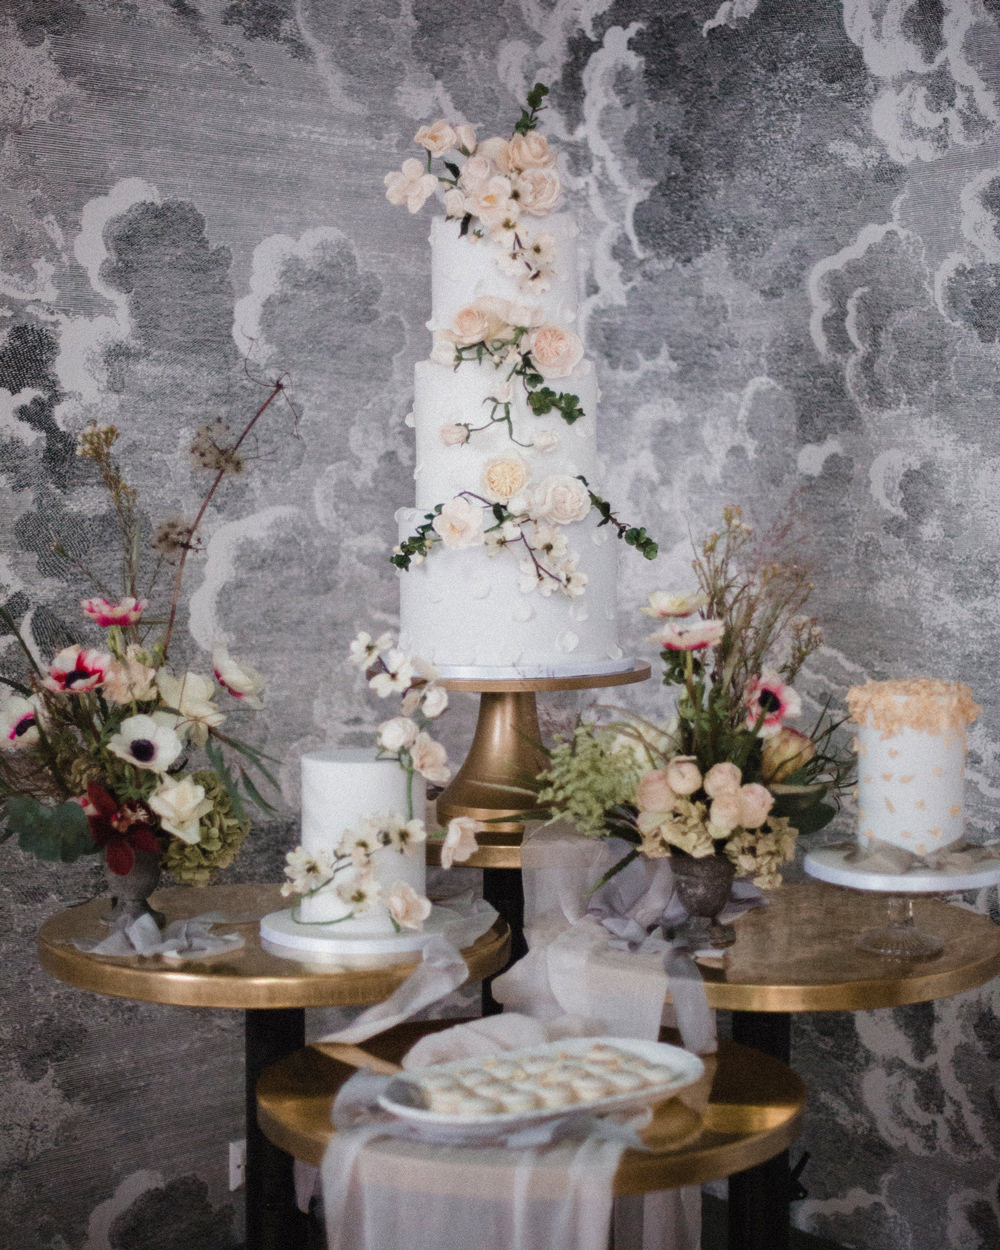 Cake Table Dessert Floral Spring Pretty Pastel Whimsical Elegant Wedding Ideas Mandorla London